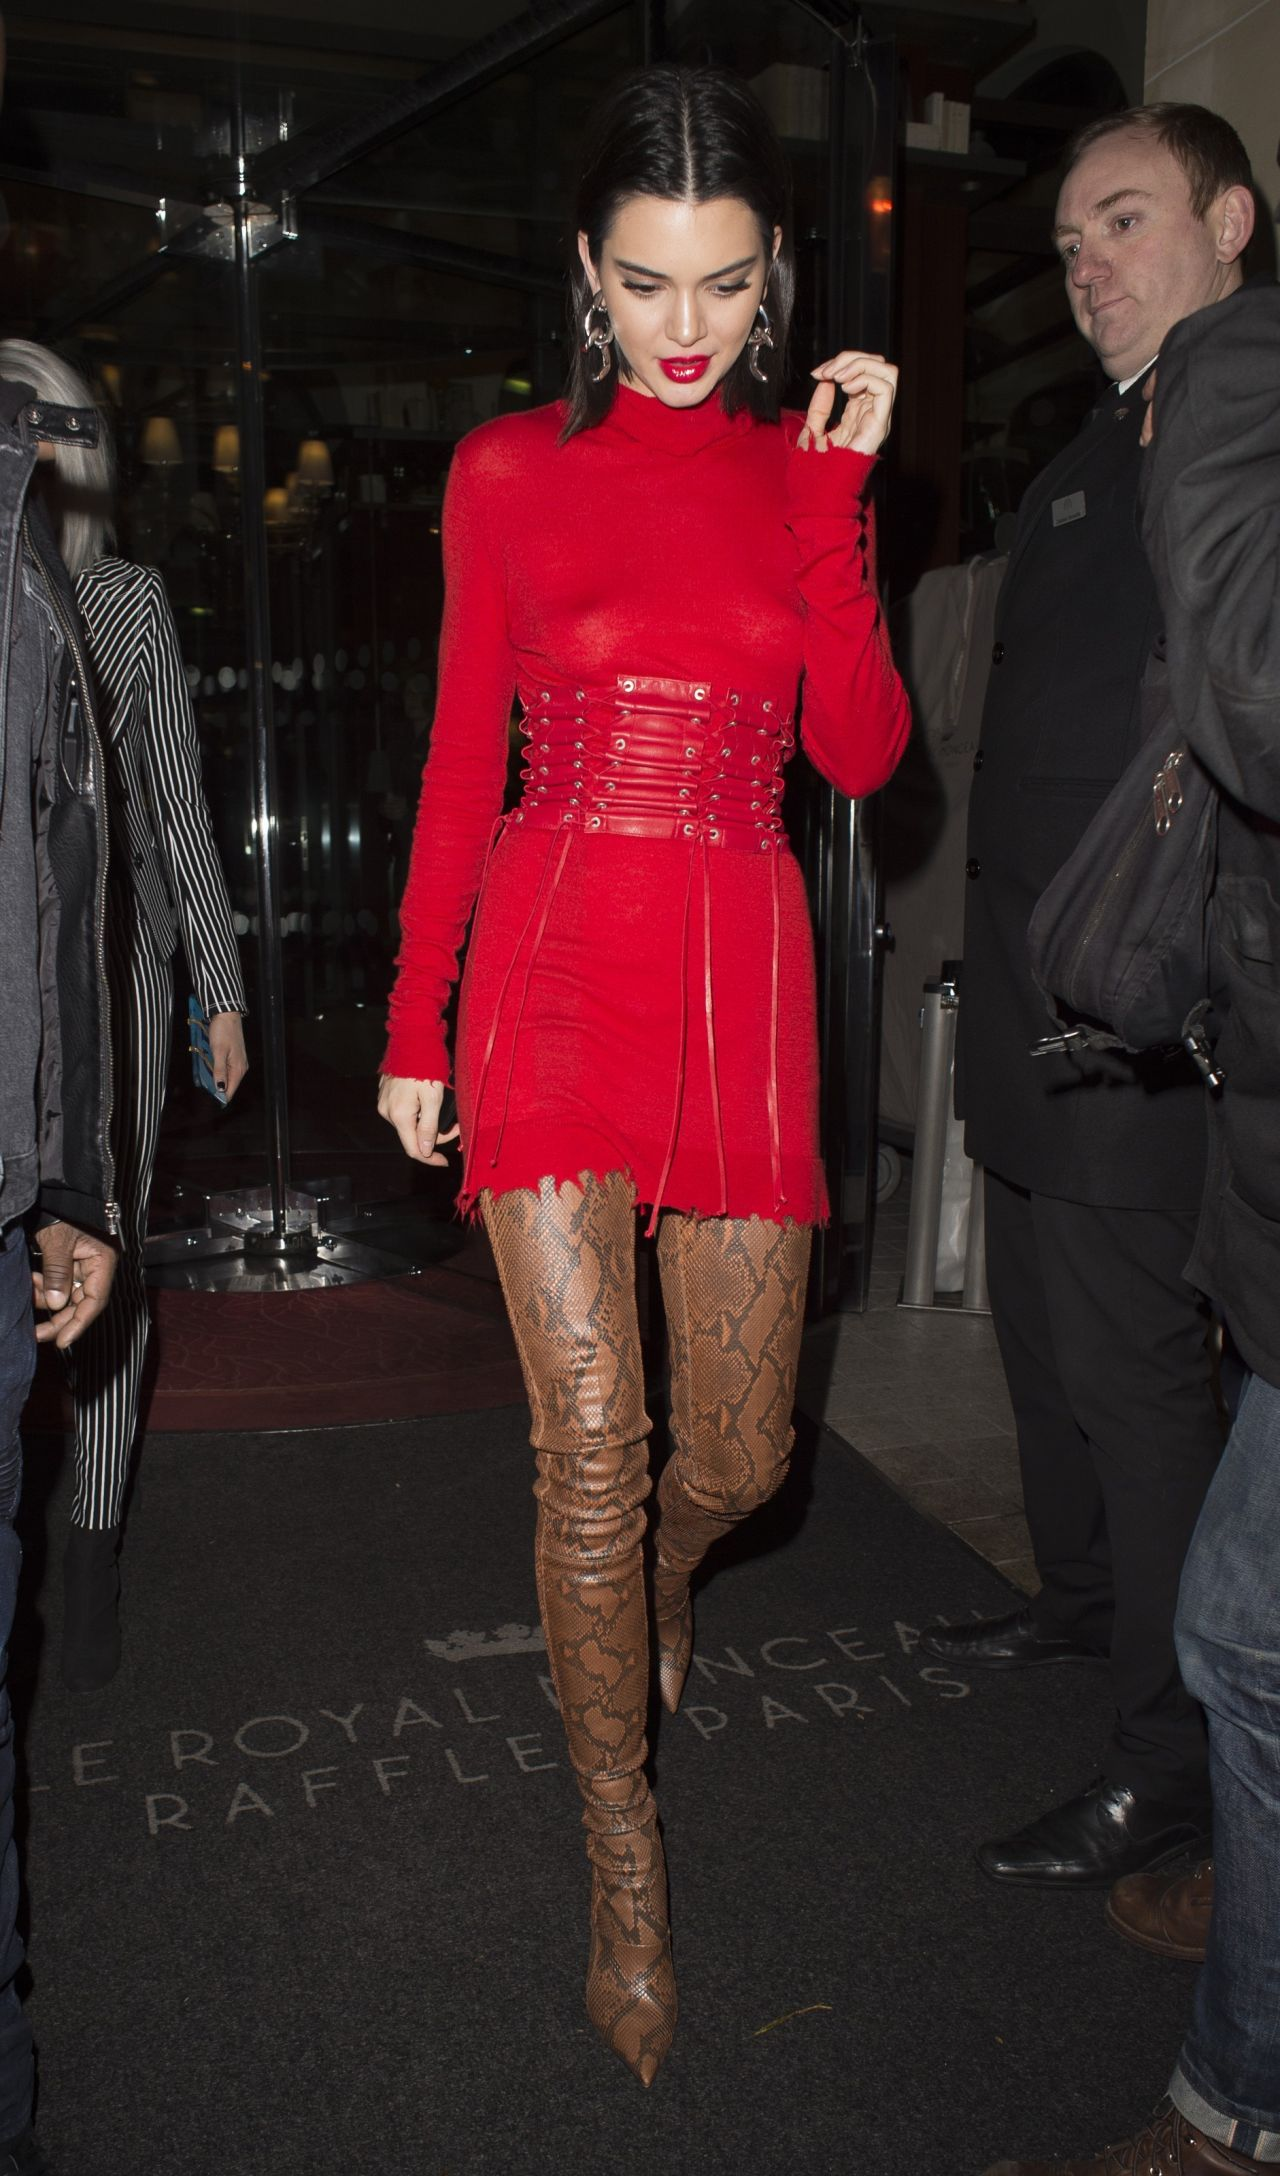 Kendall Jenner Wearing A Red Dress Out In Paris 3 4 2017